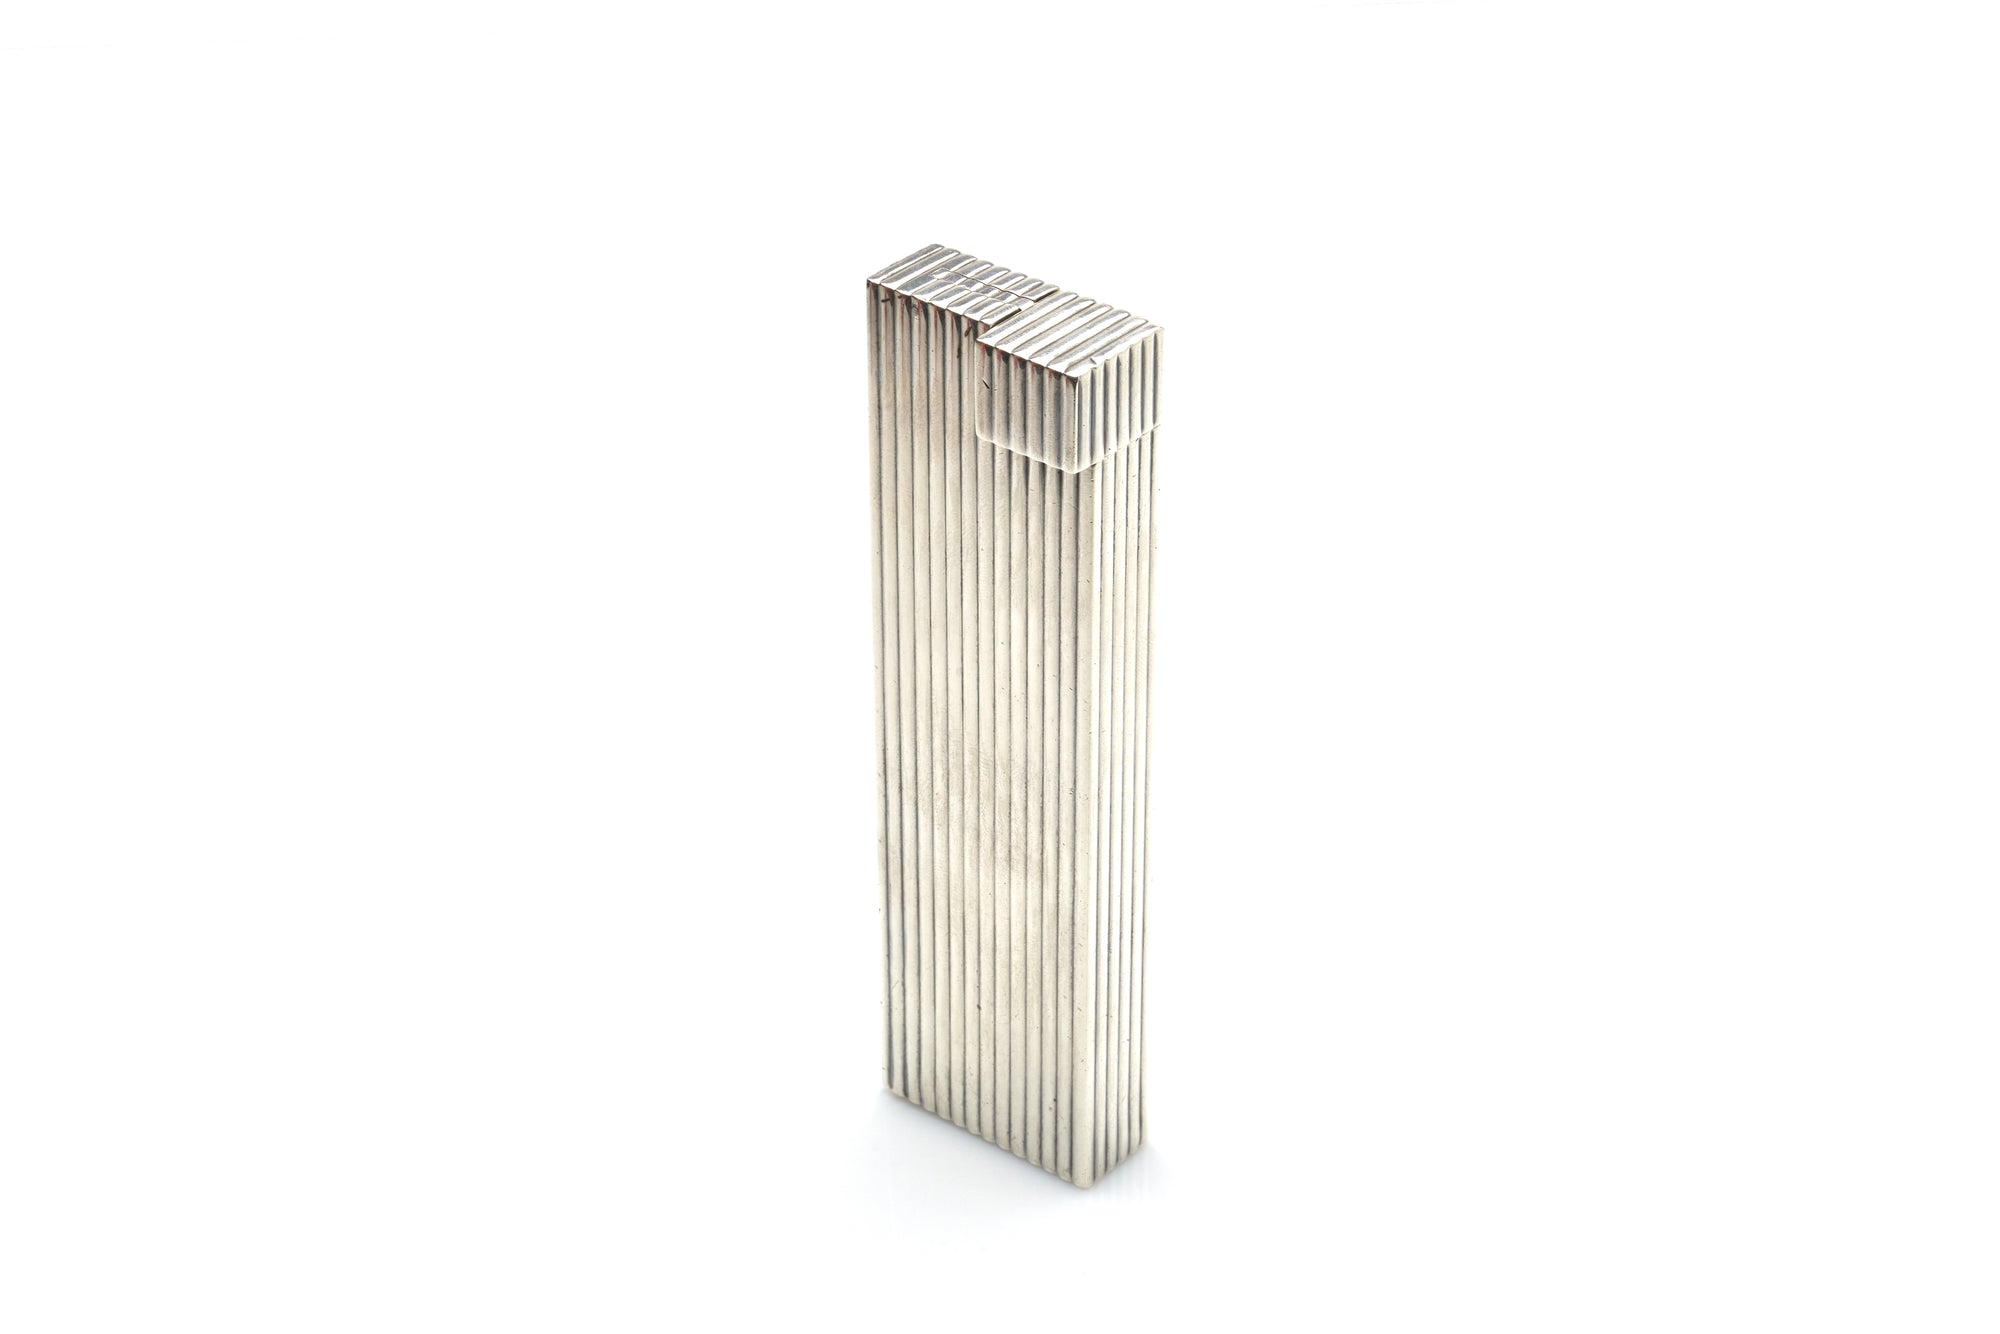 Cartier Sterling Silver Table Lighter, 1930s